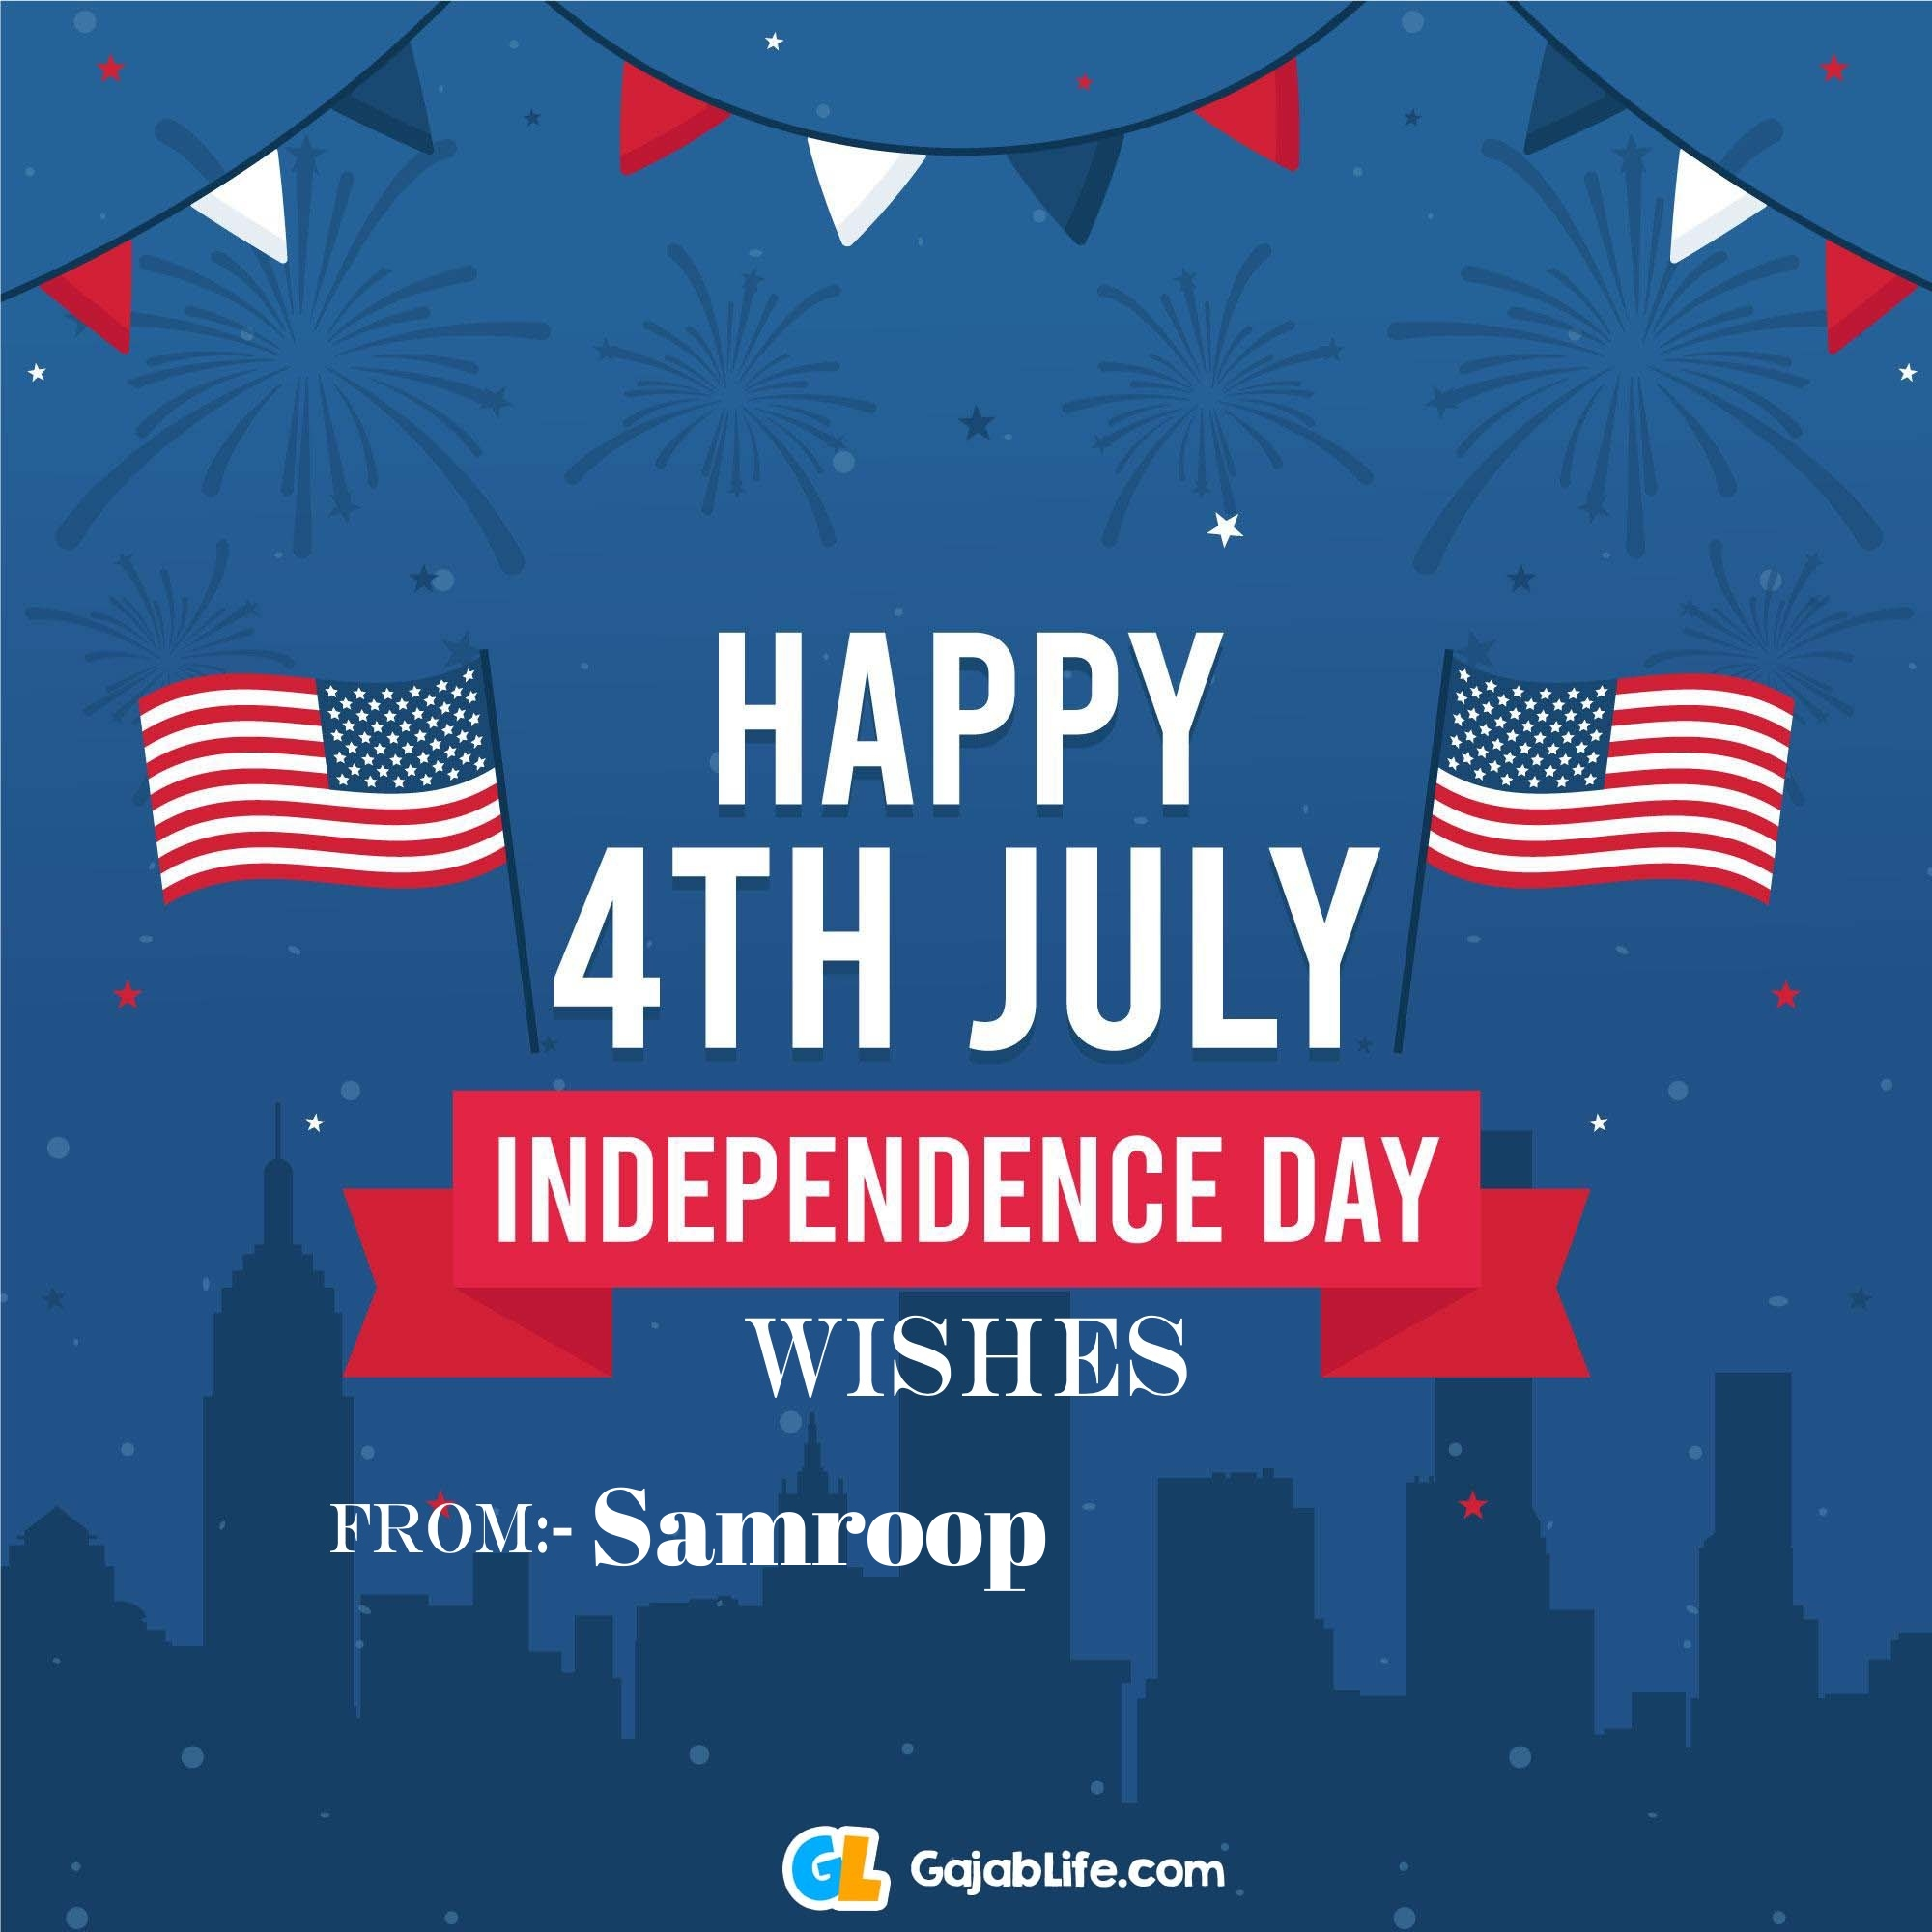 Samroop happy independence day united states of america images